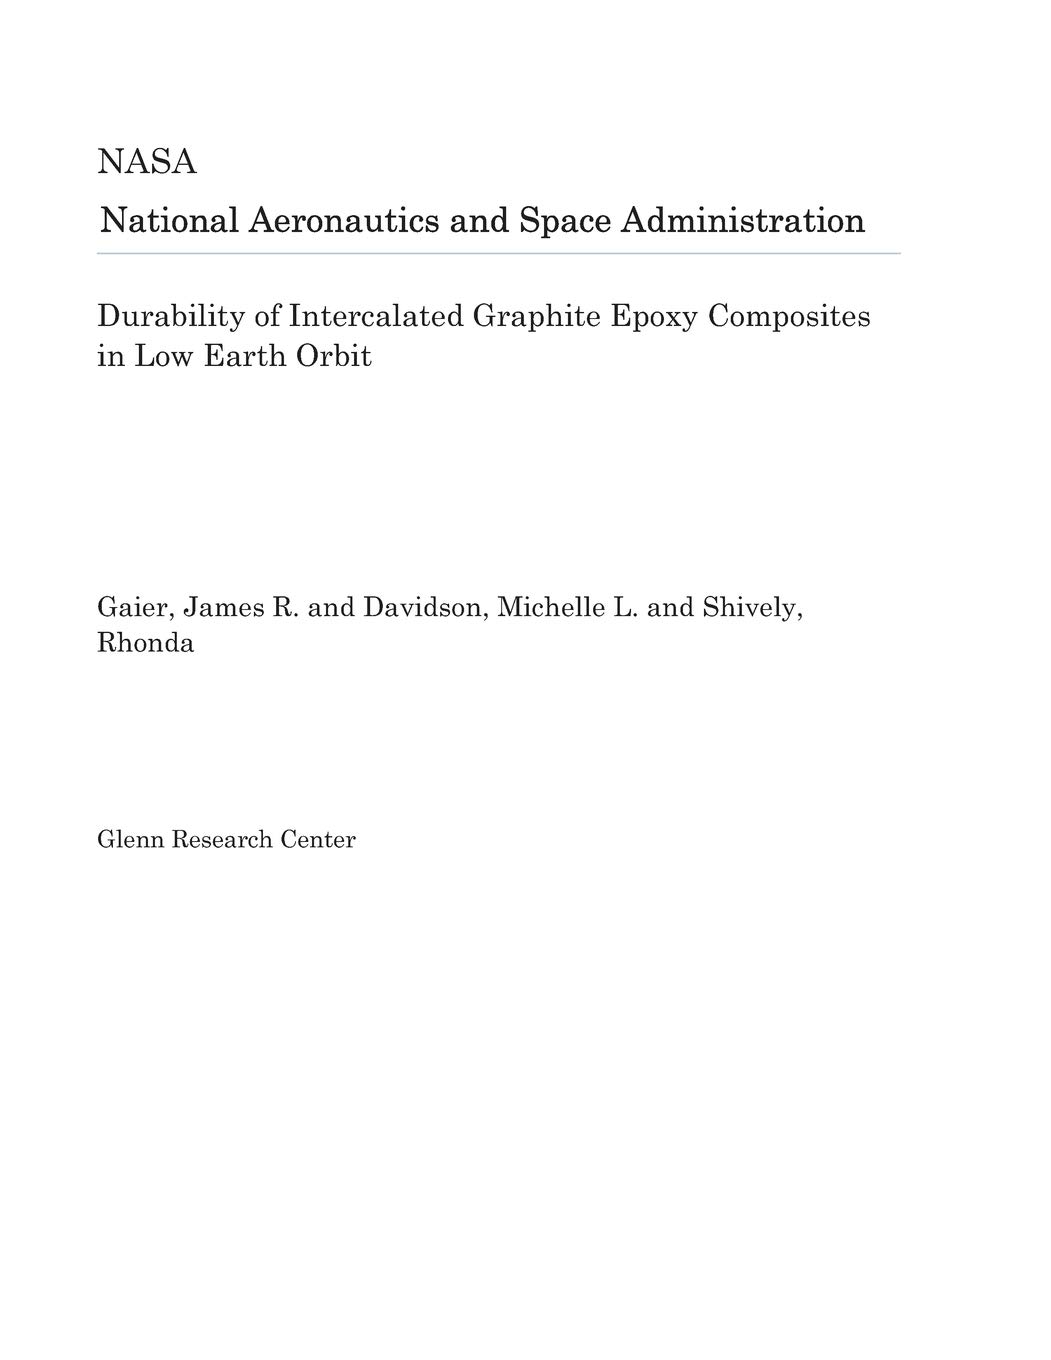 Durability of Intercalated Graphite Epoxy Composites in Low Earth Orbit  Paperback – Import 707c8e41184